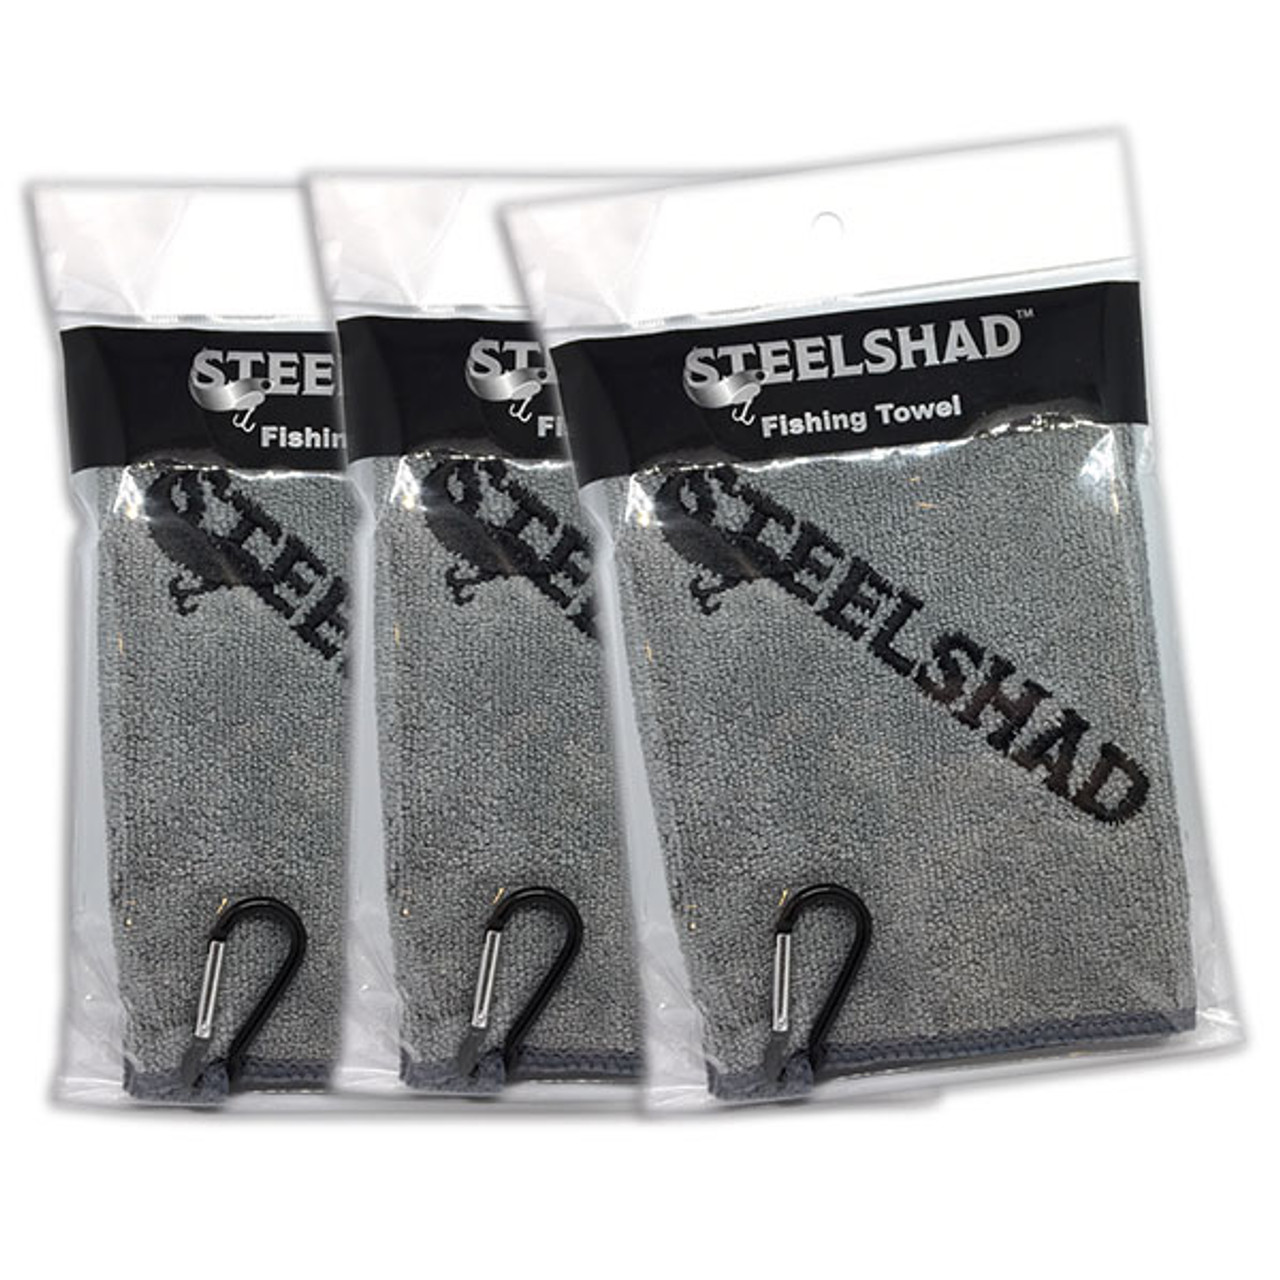 SteelShad Fishing Towel - 3 Pack